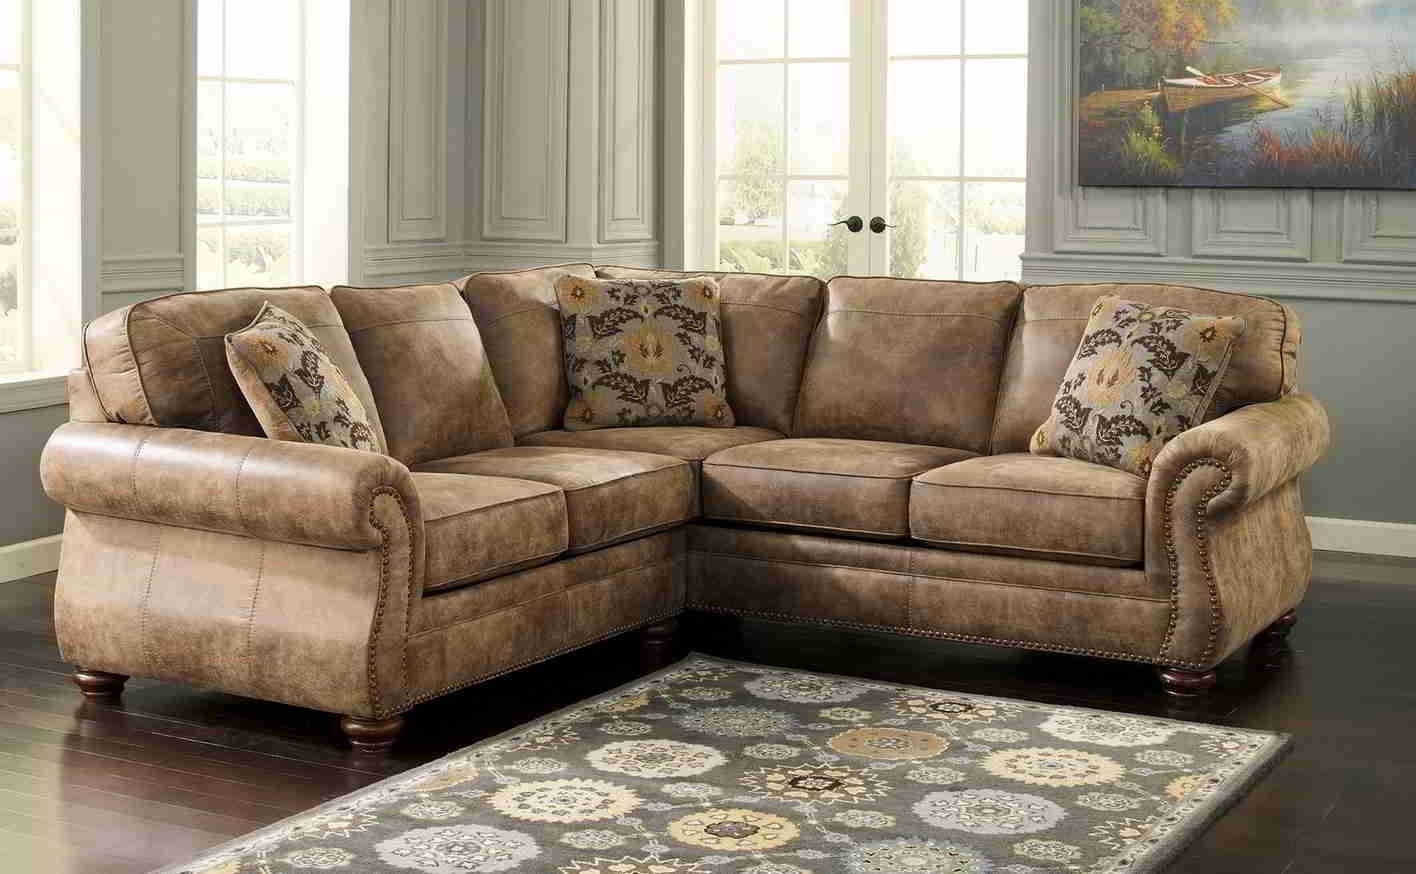 High Back Leather Sectional Sofas • Leather Sofa Regarding Sectional Sofas With High Backs (View 3 of 10)